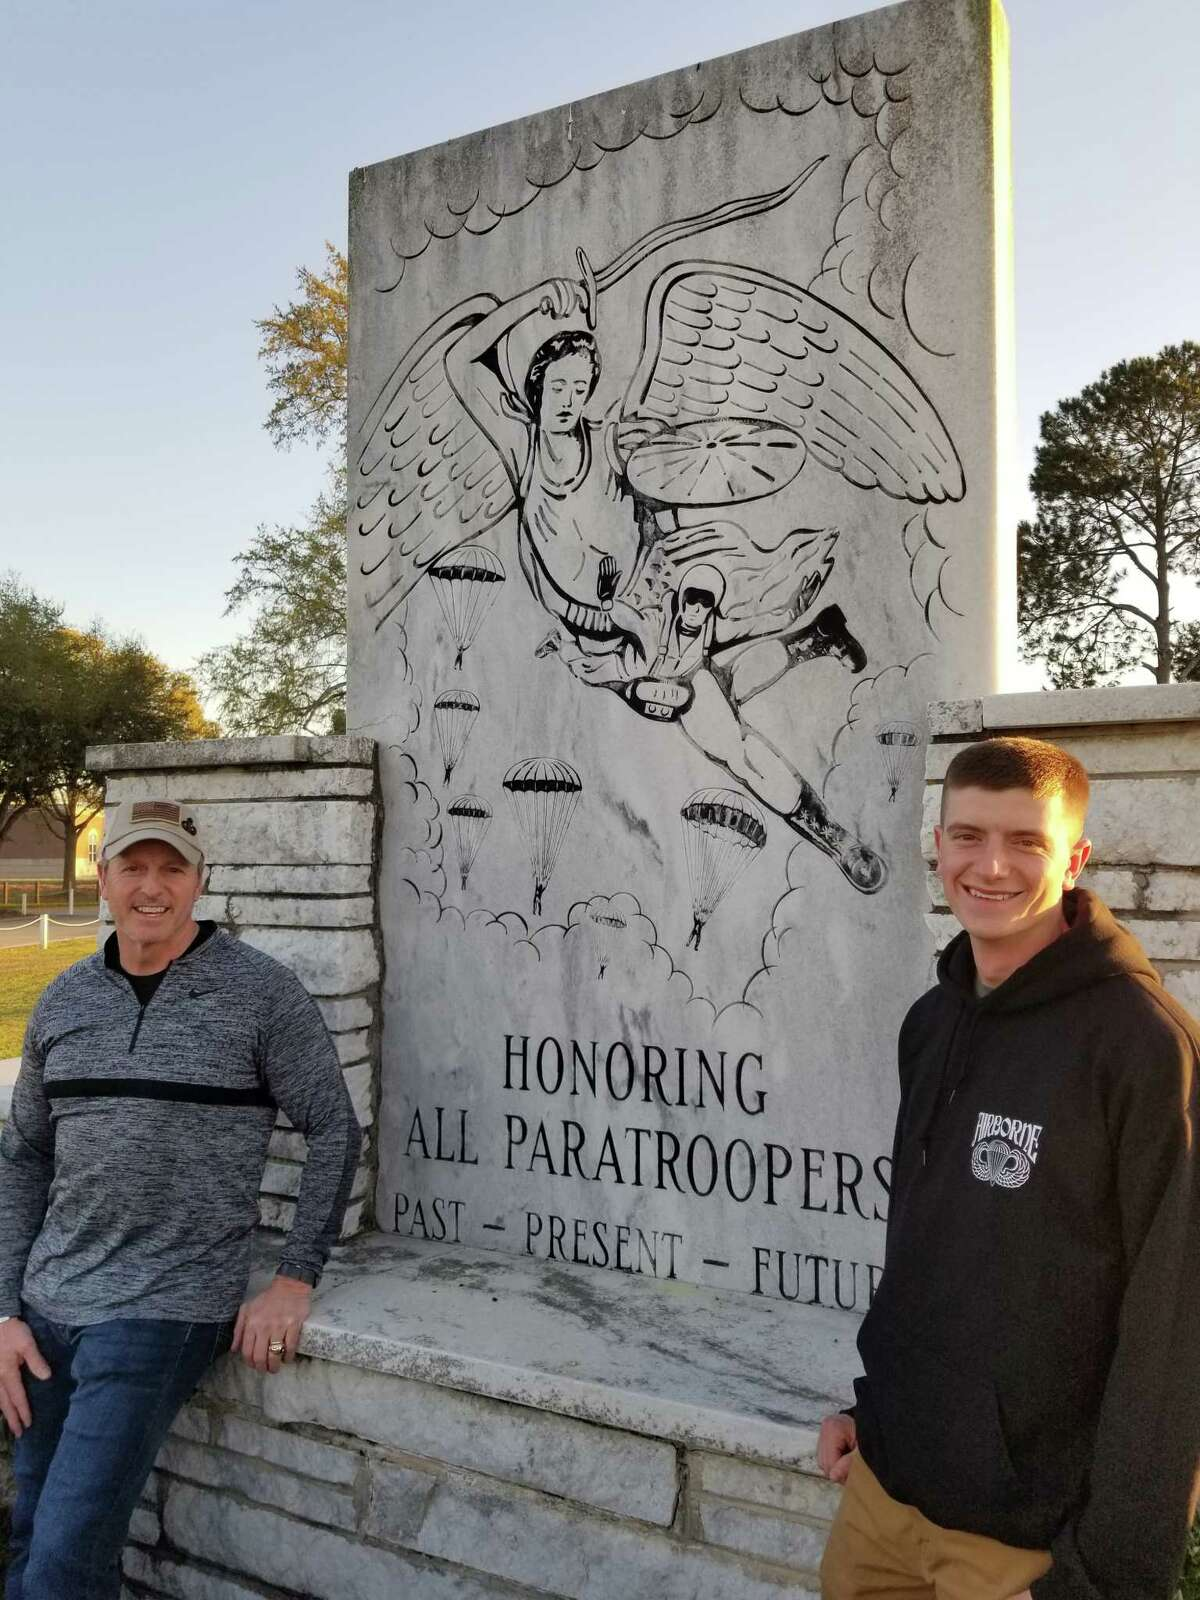 Retired Army Col. Samuel Johnson and his son Bradley, both Army paratroopers visit an airborne monument at Fort Benning, Ga. (Provided)